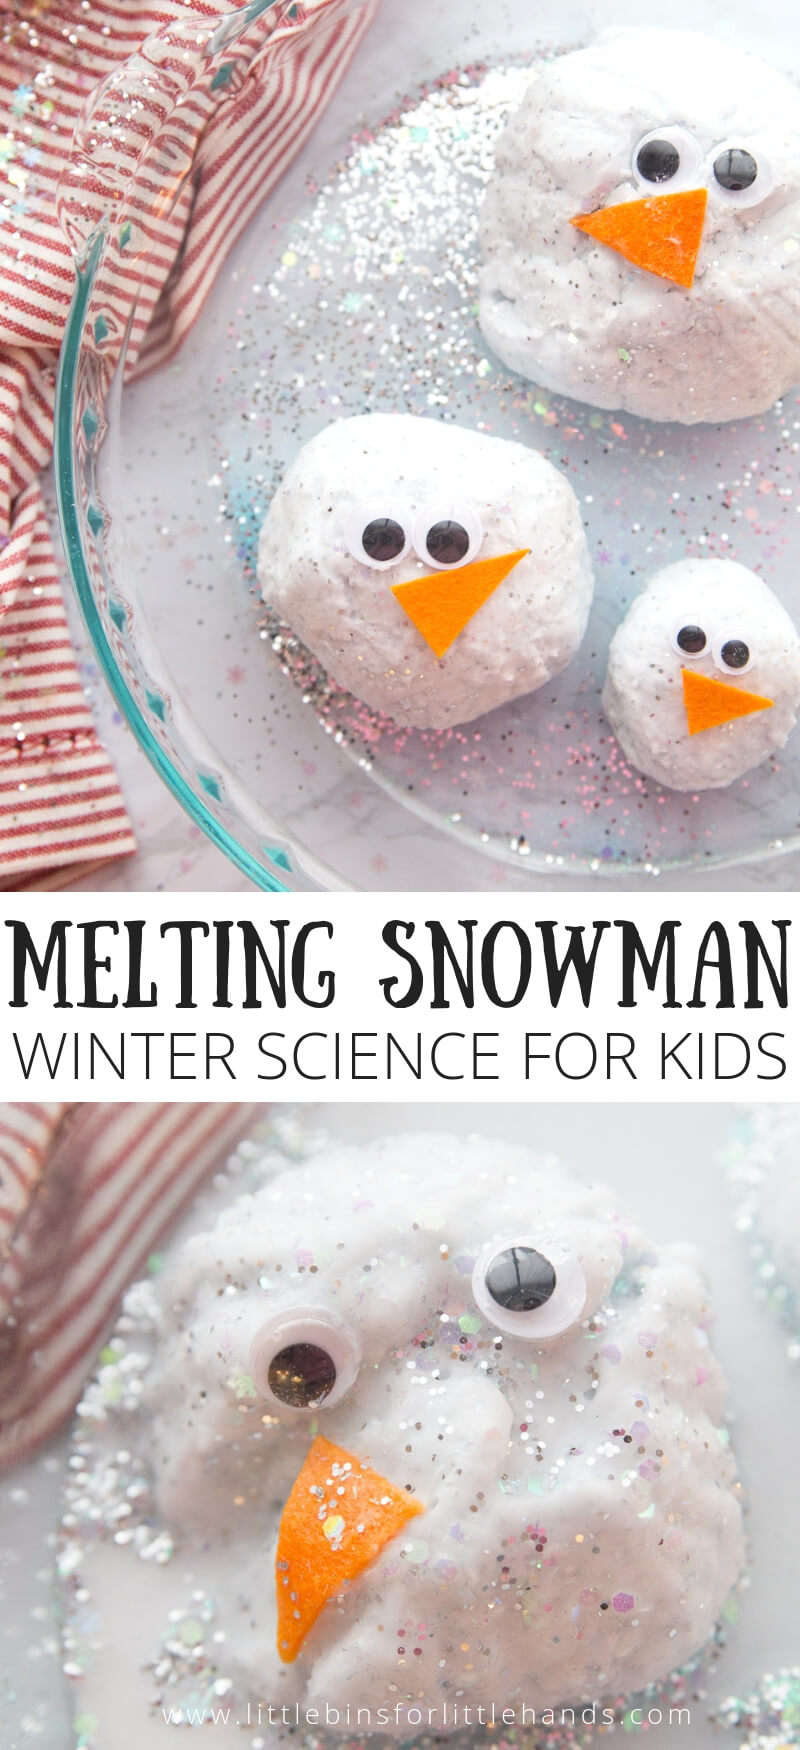 FUN MELTING SNOWMAN BAKING SODA SCIENCE WINTER ACTIVITY